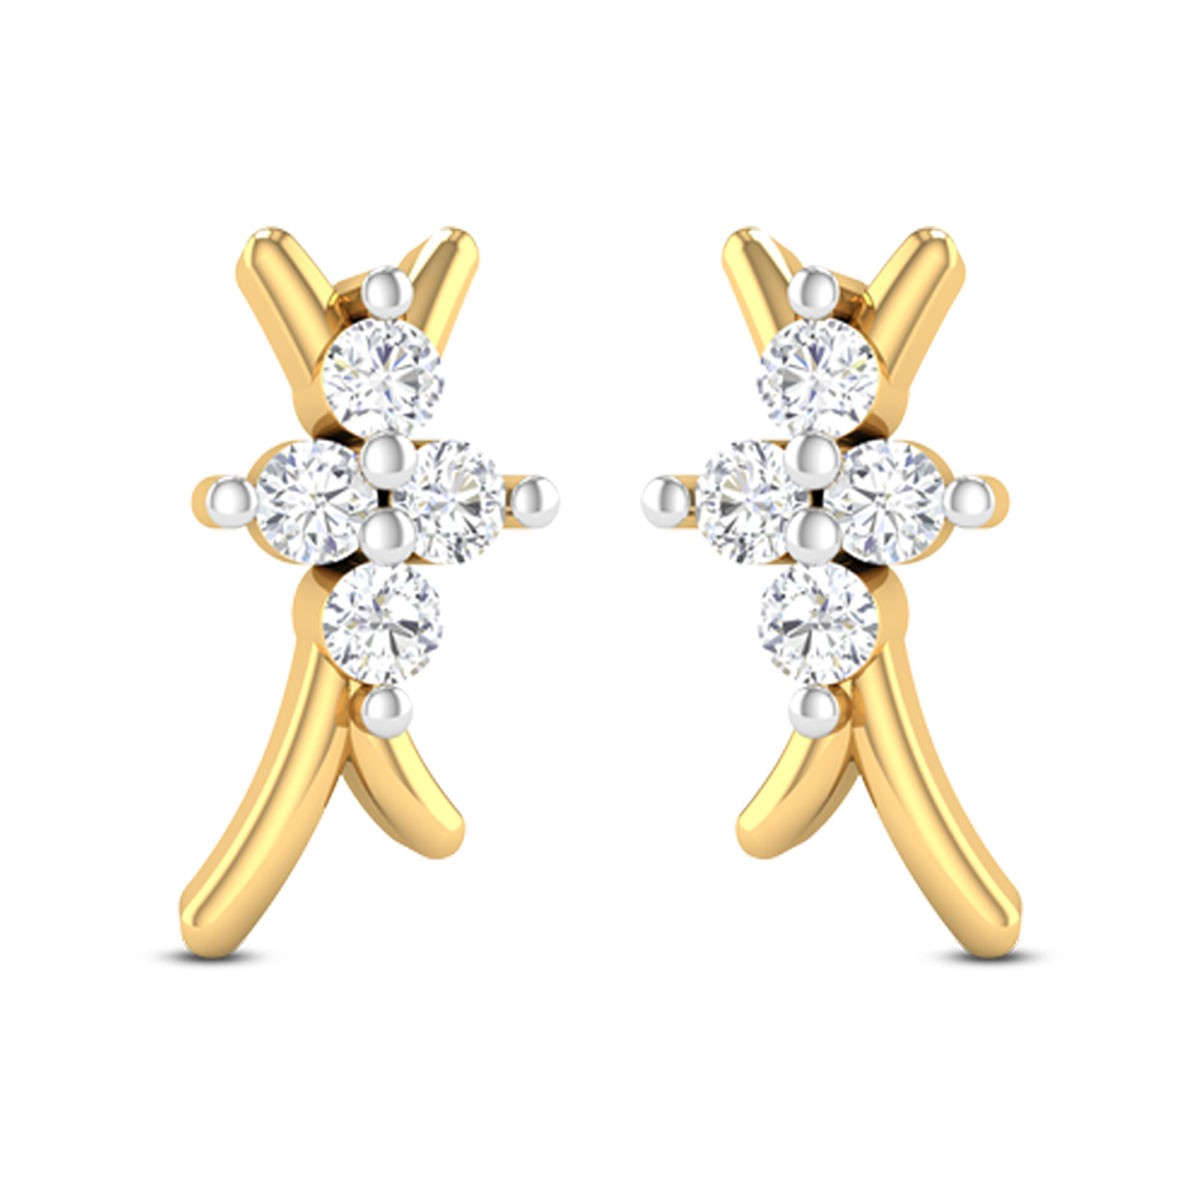 Ria Diamond Earrings